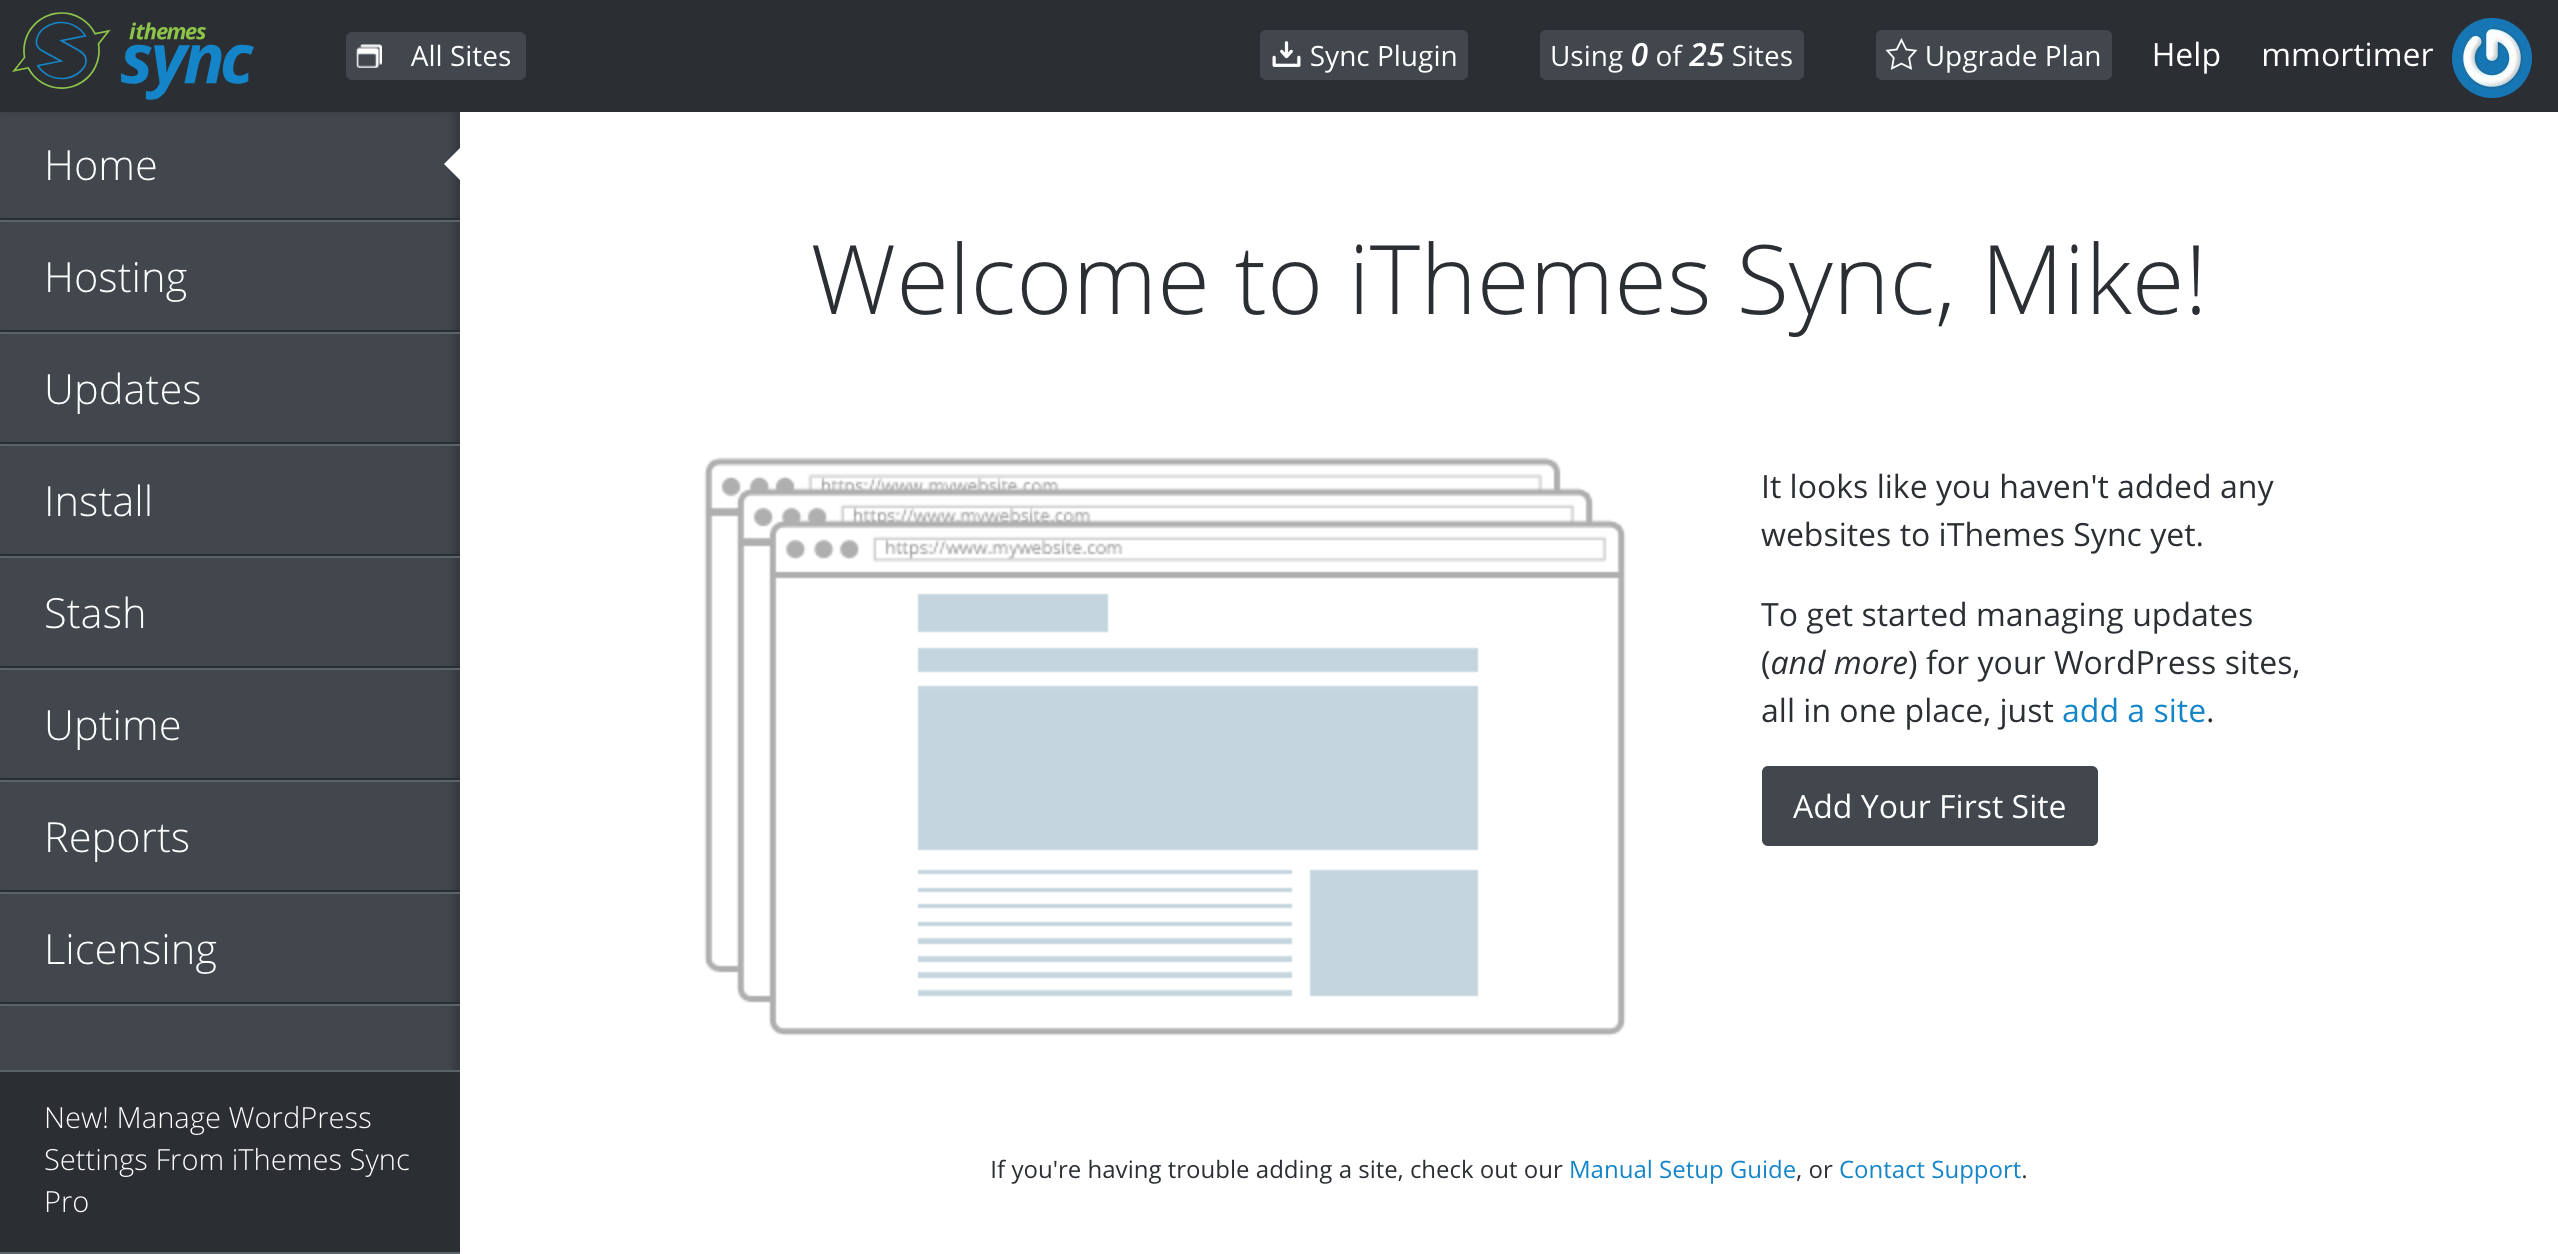 iThemes_Sync___Home.png